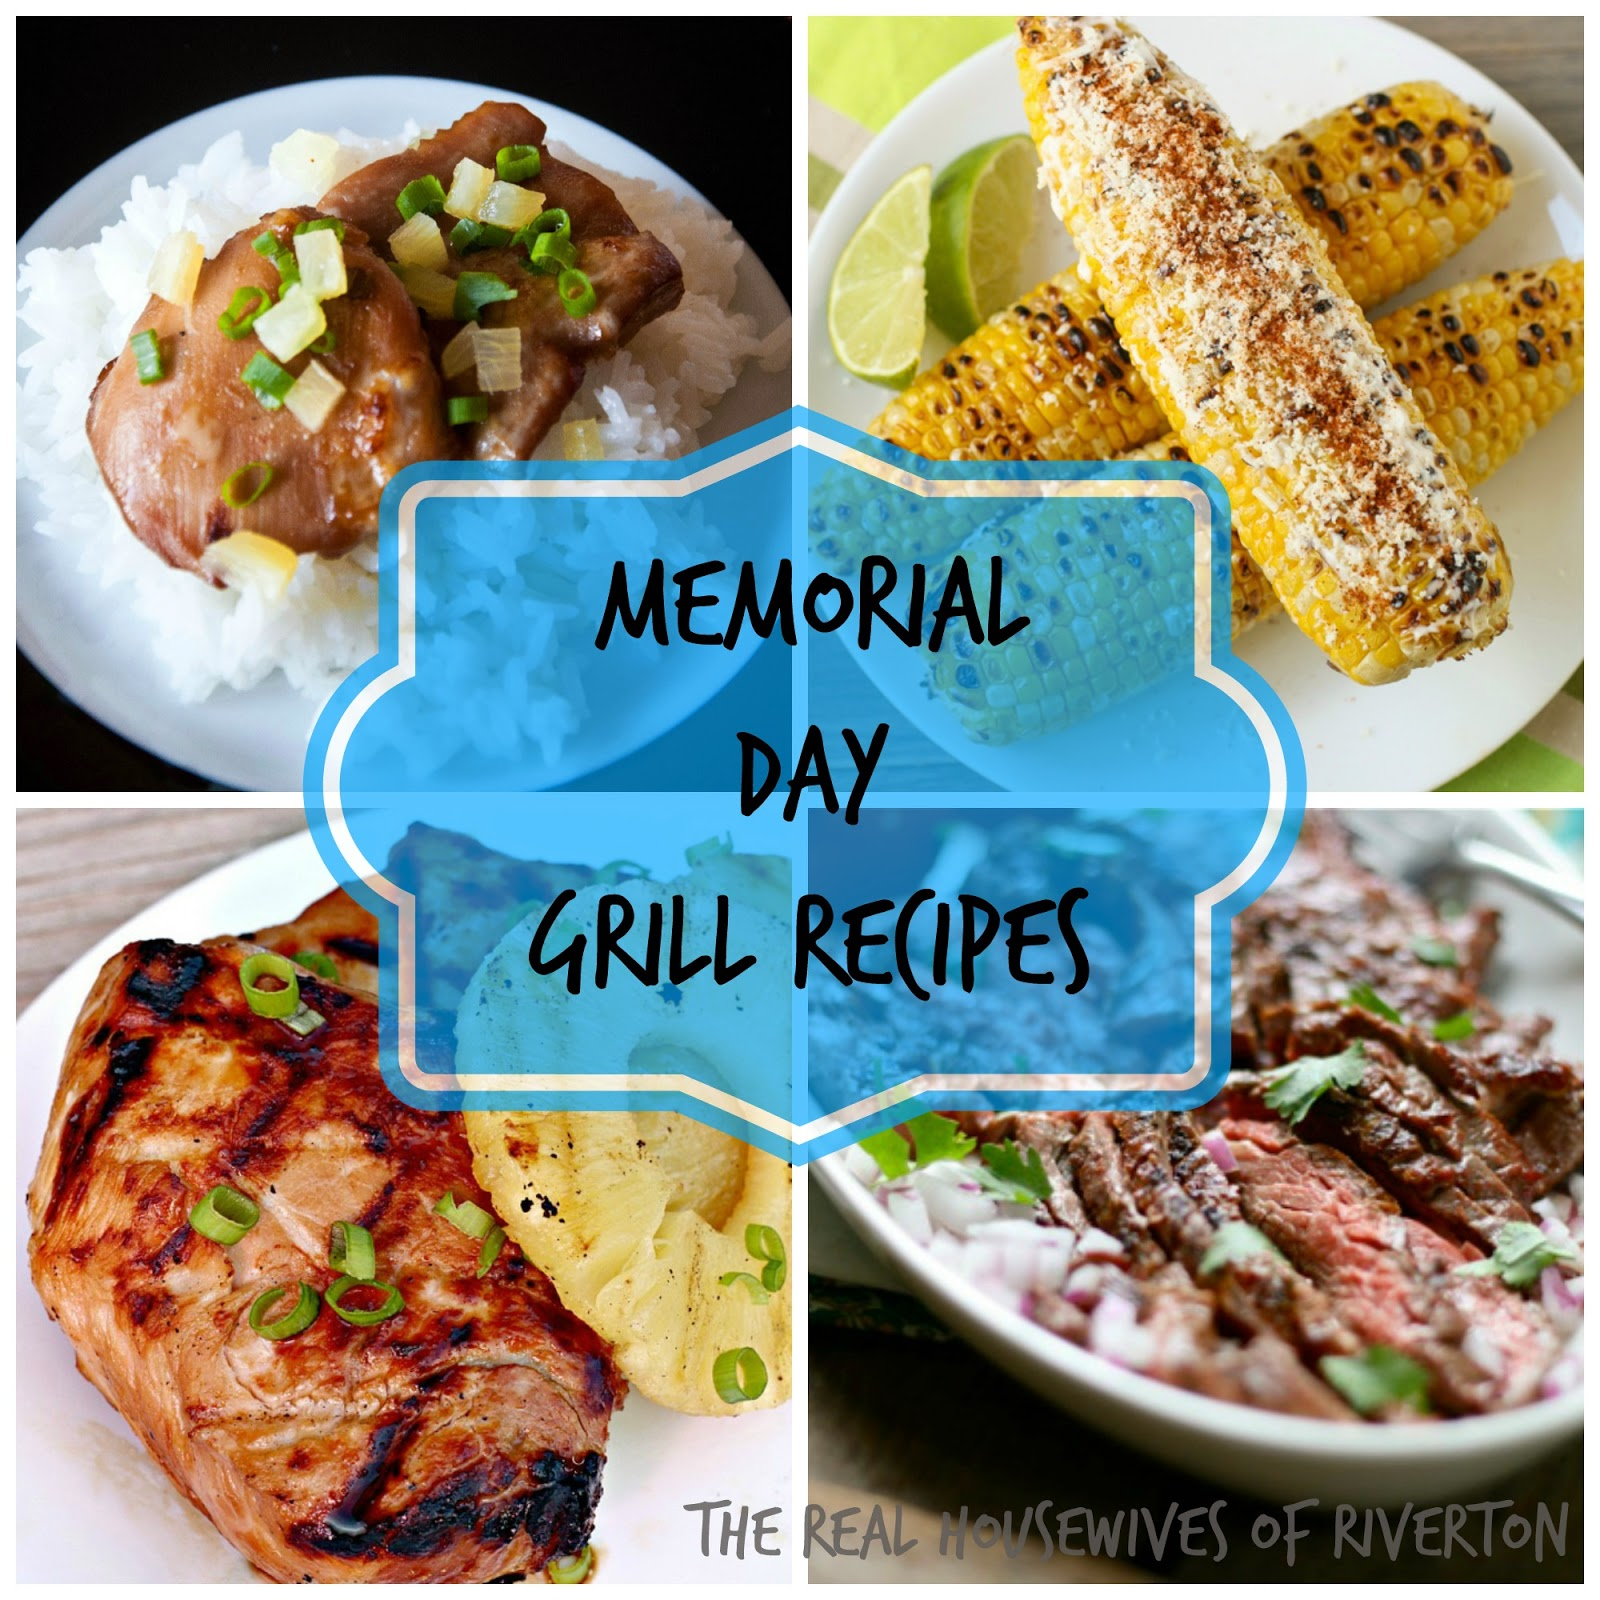 10 Amazing Memorial Day Grill Recipes